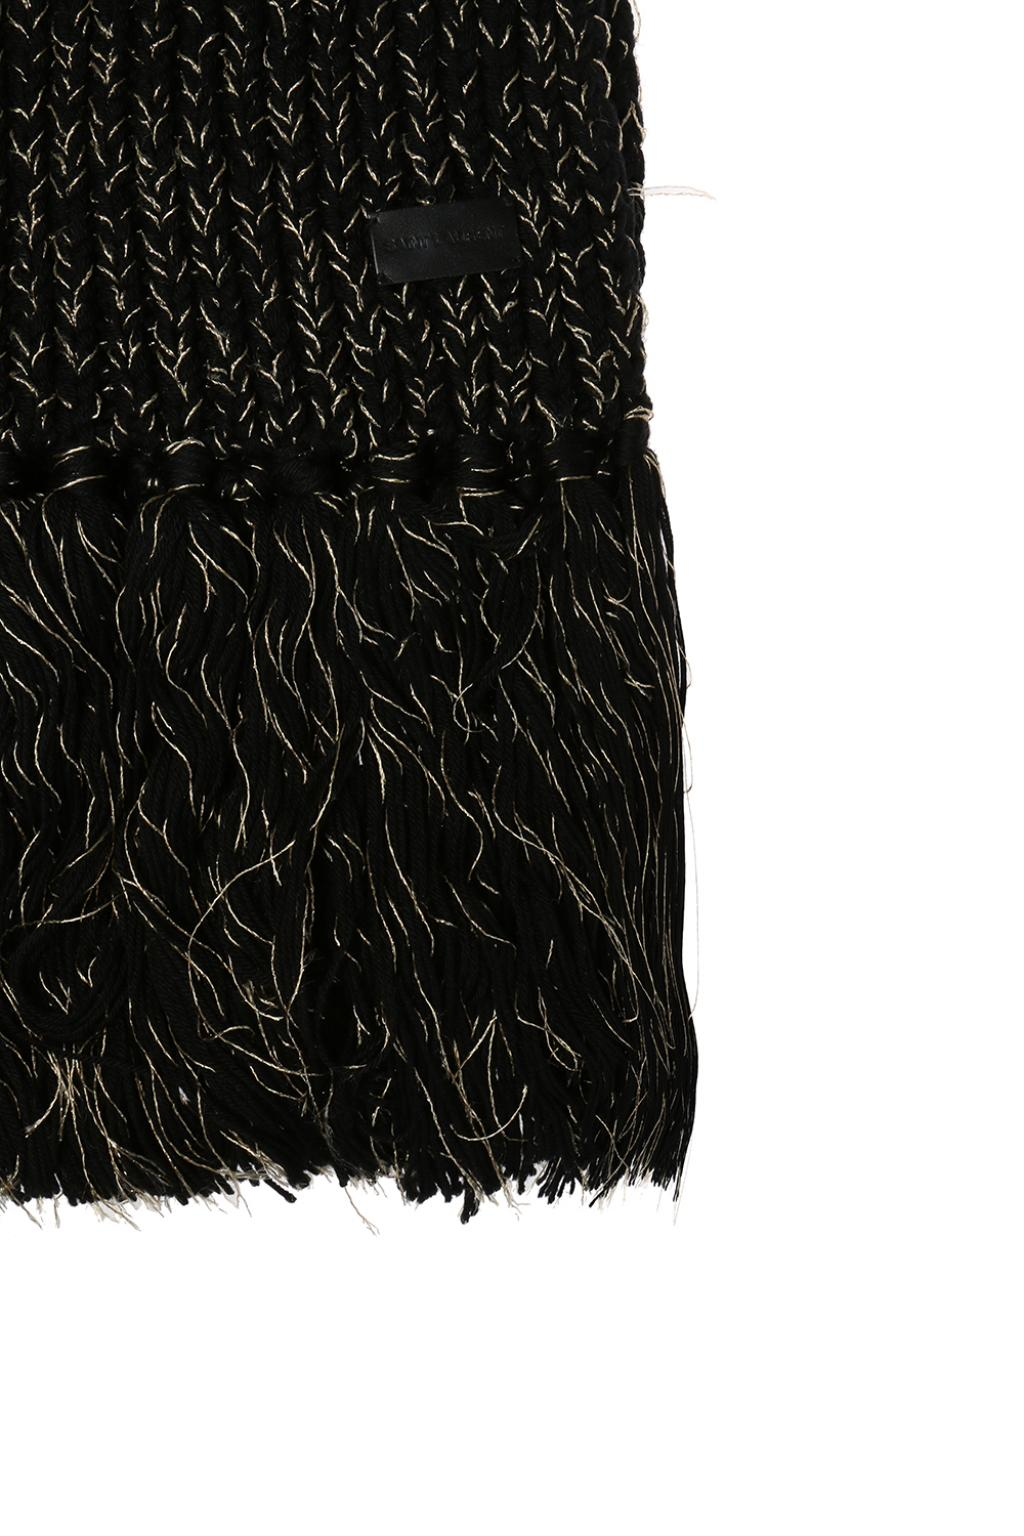 Saint Laurent Lurex yarn scarf